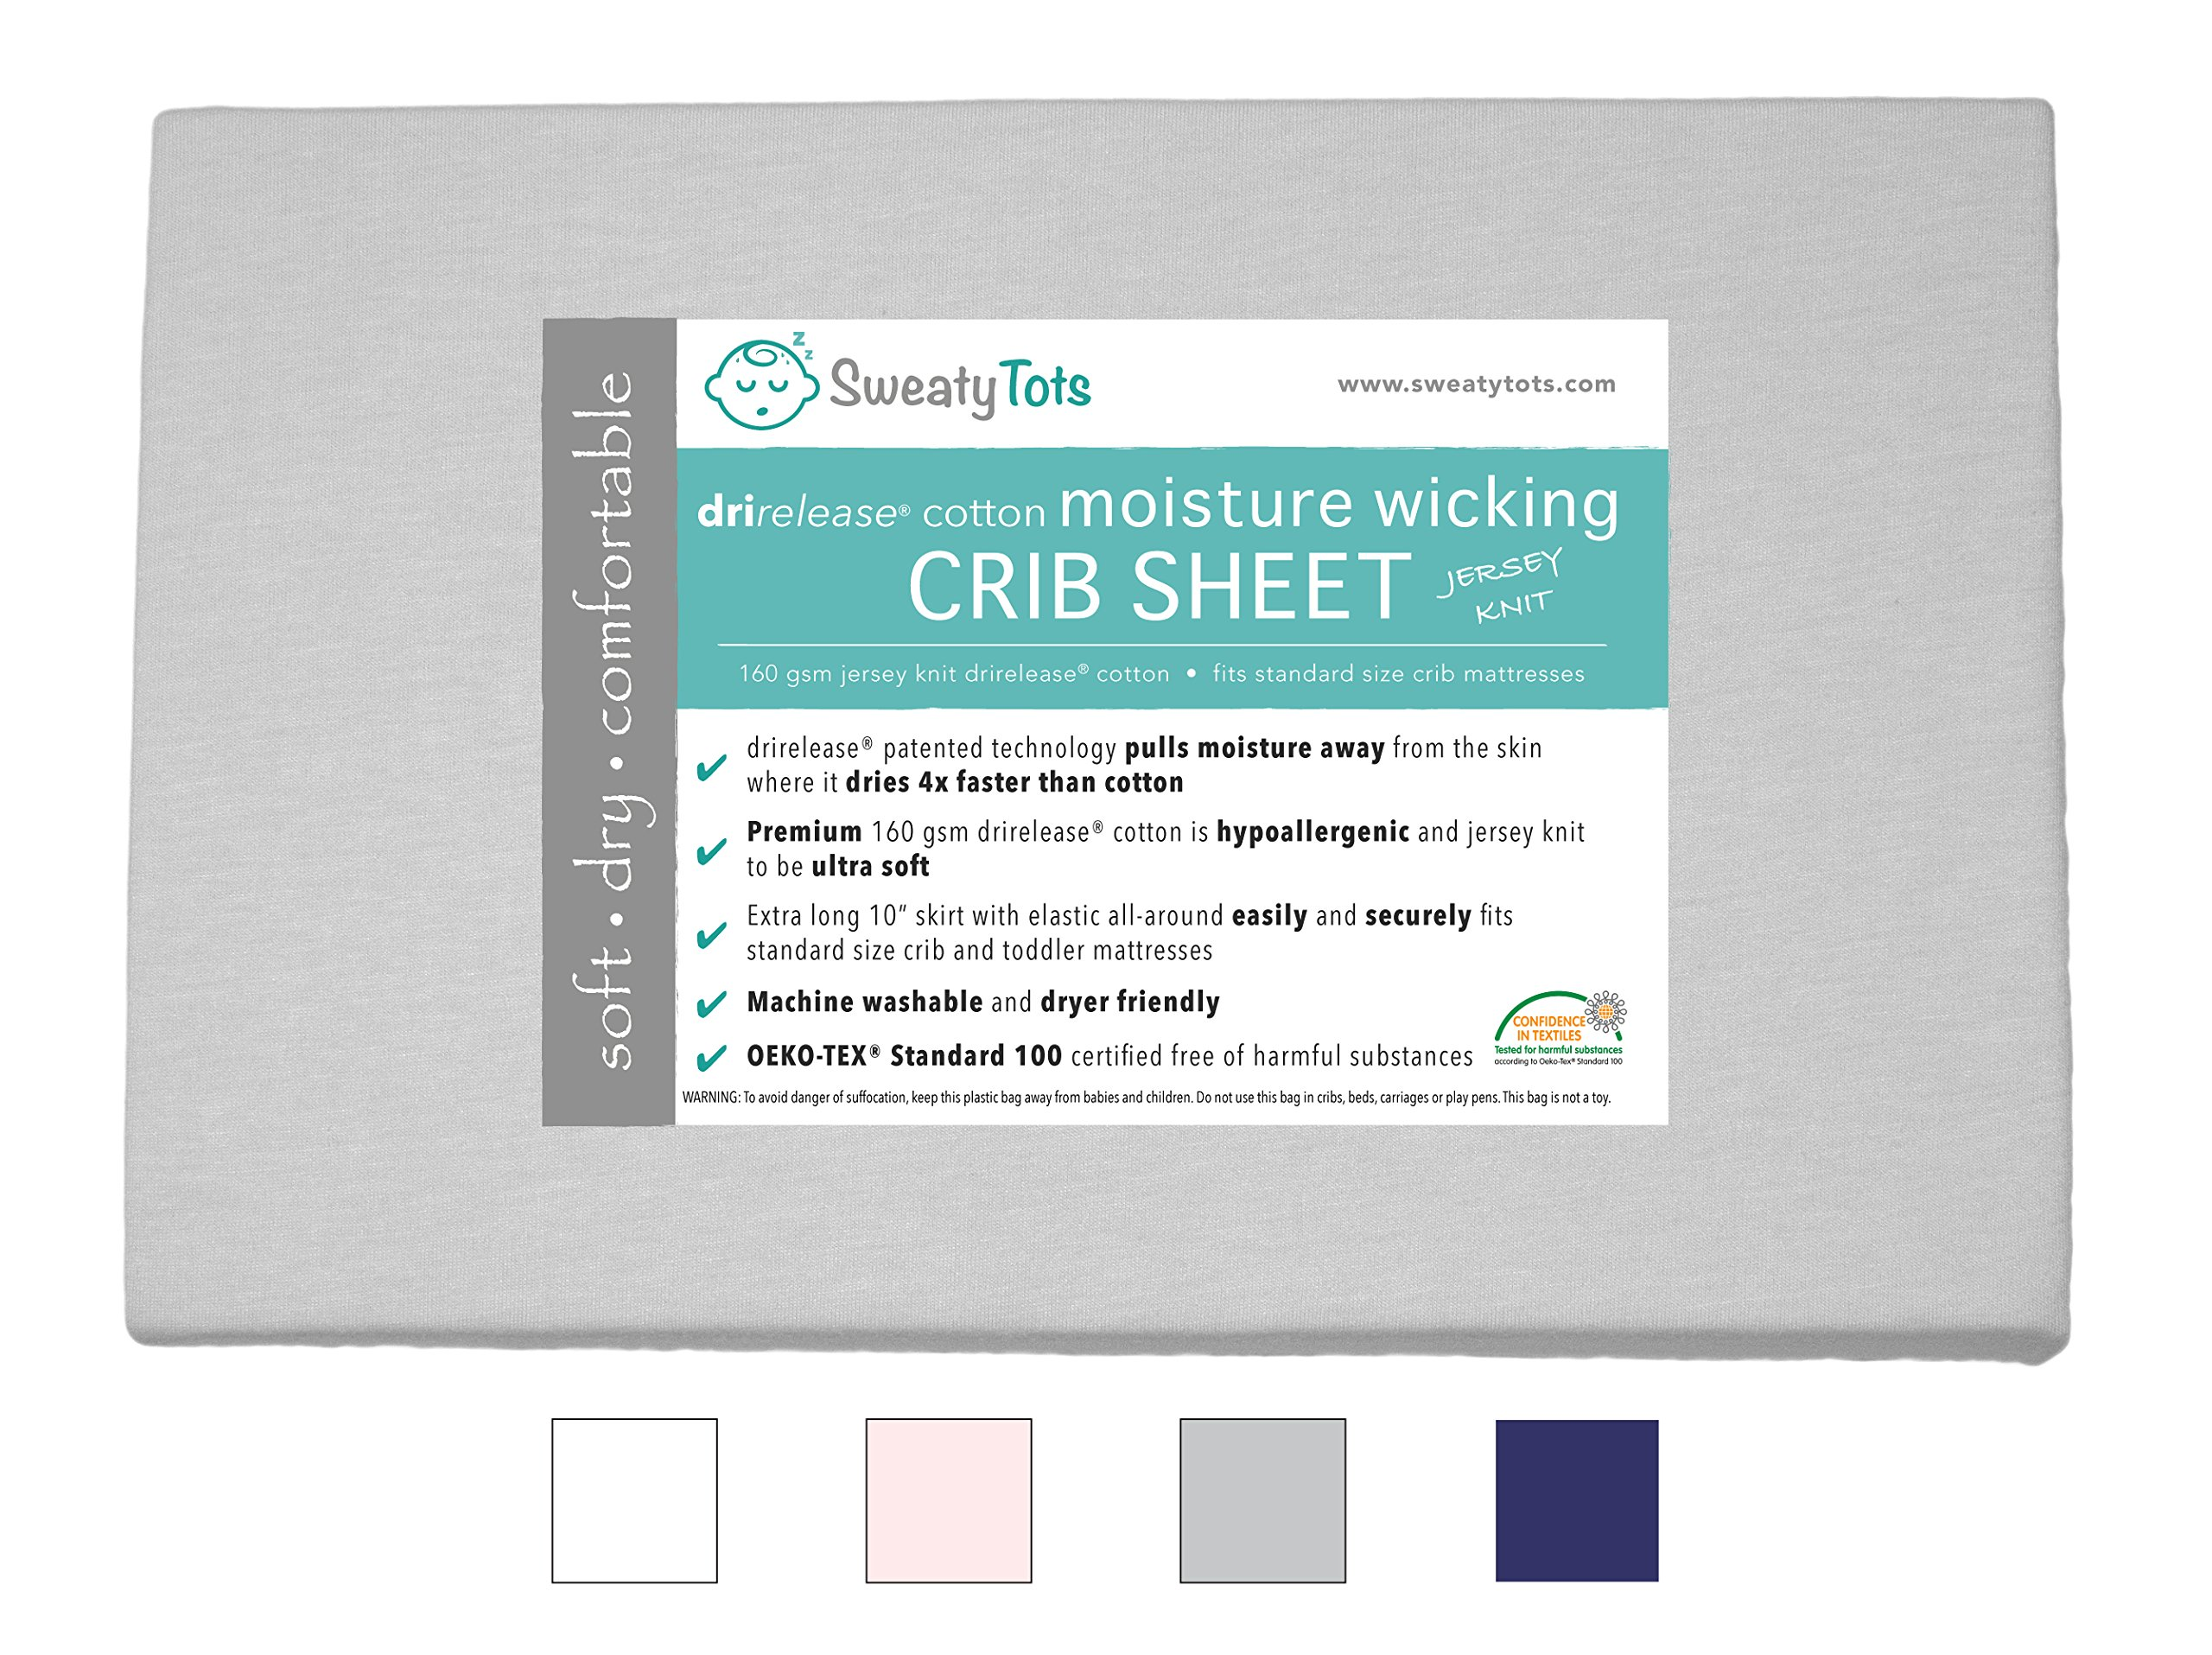 Moisture Wicking Fitted Crib Sheet for Sweaty, Leaky, Drooly Sleepers - Jersey Knit, Fits Standard Crib and Toddler Mattresses, Features Patented Drirelease(R) Moisture Wicking Technology (Gray)